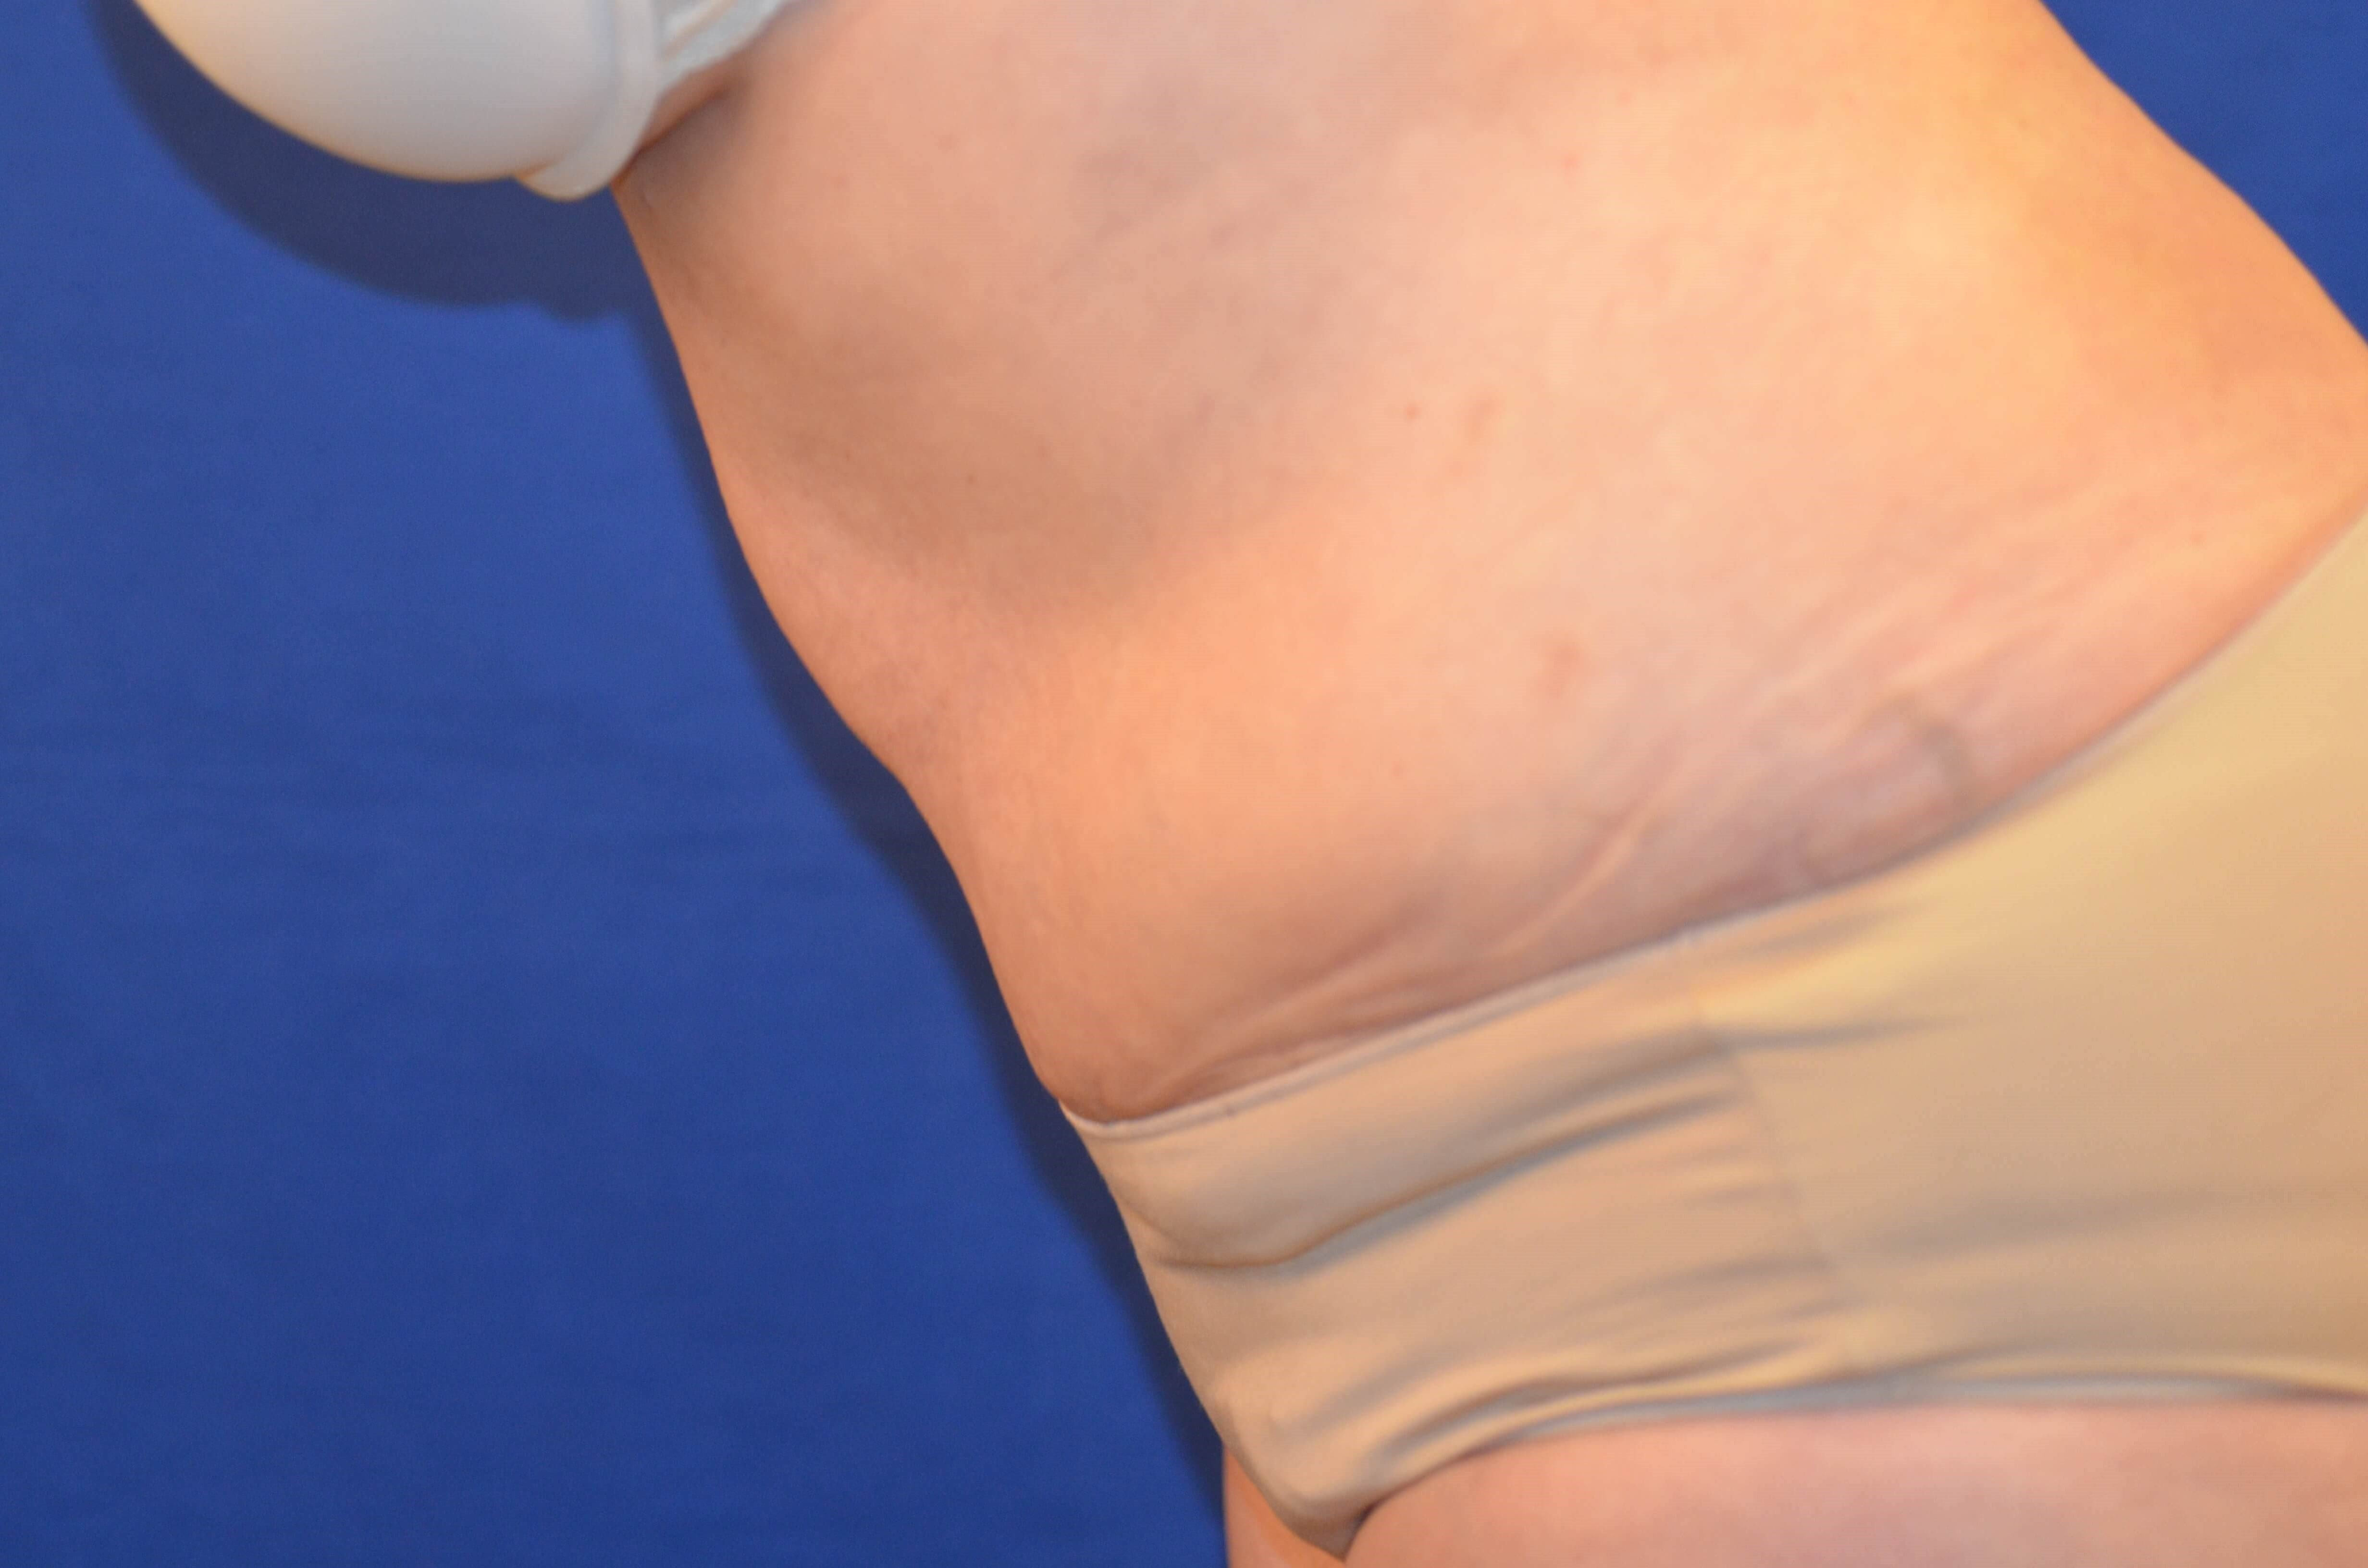 Newport Beach Tummy Tuck Lipo After Side View Flexing